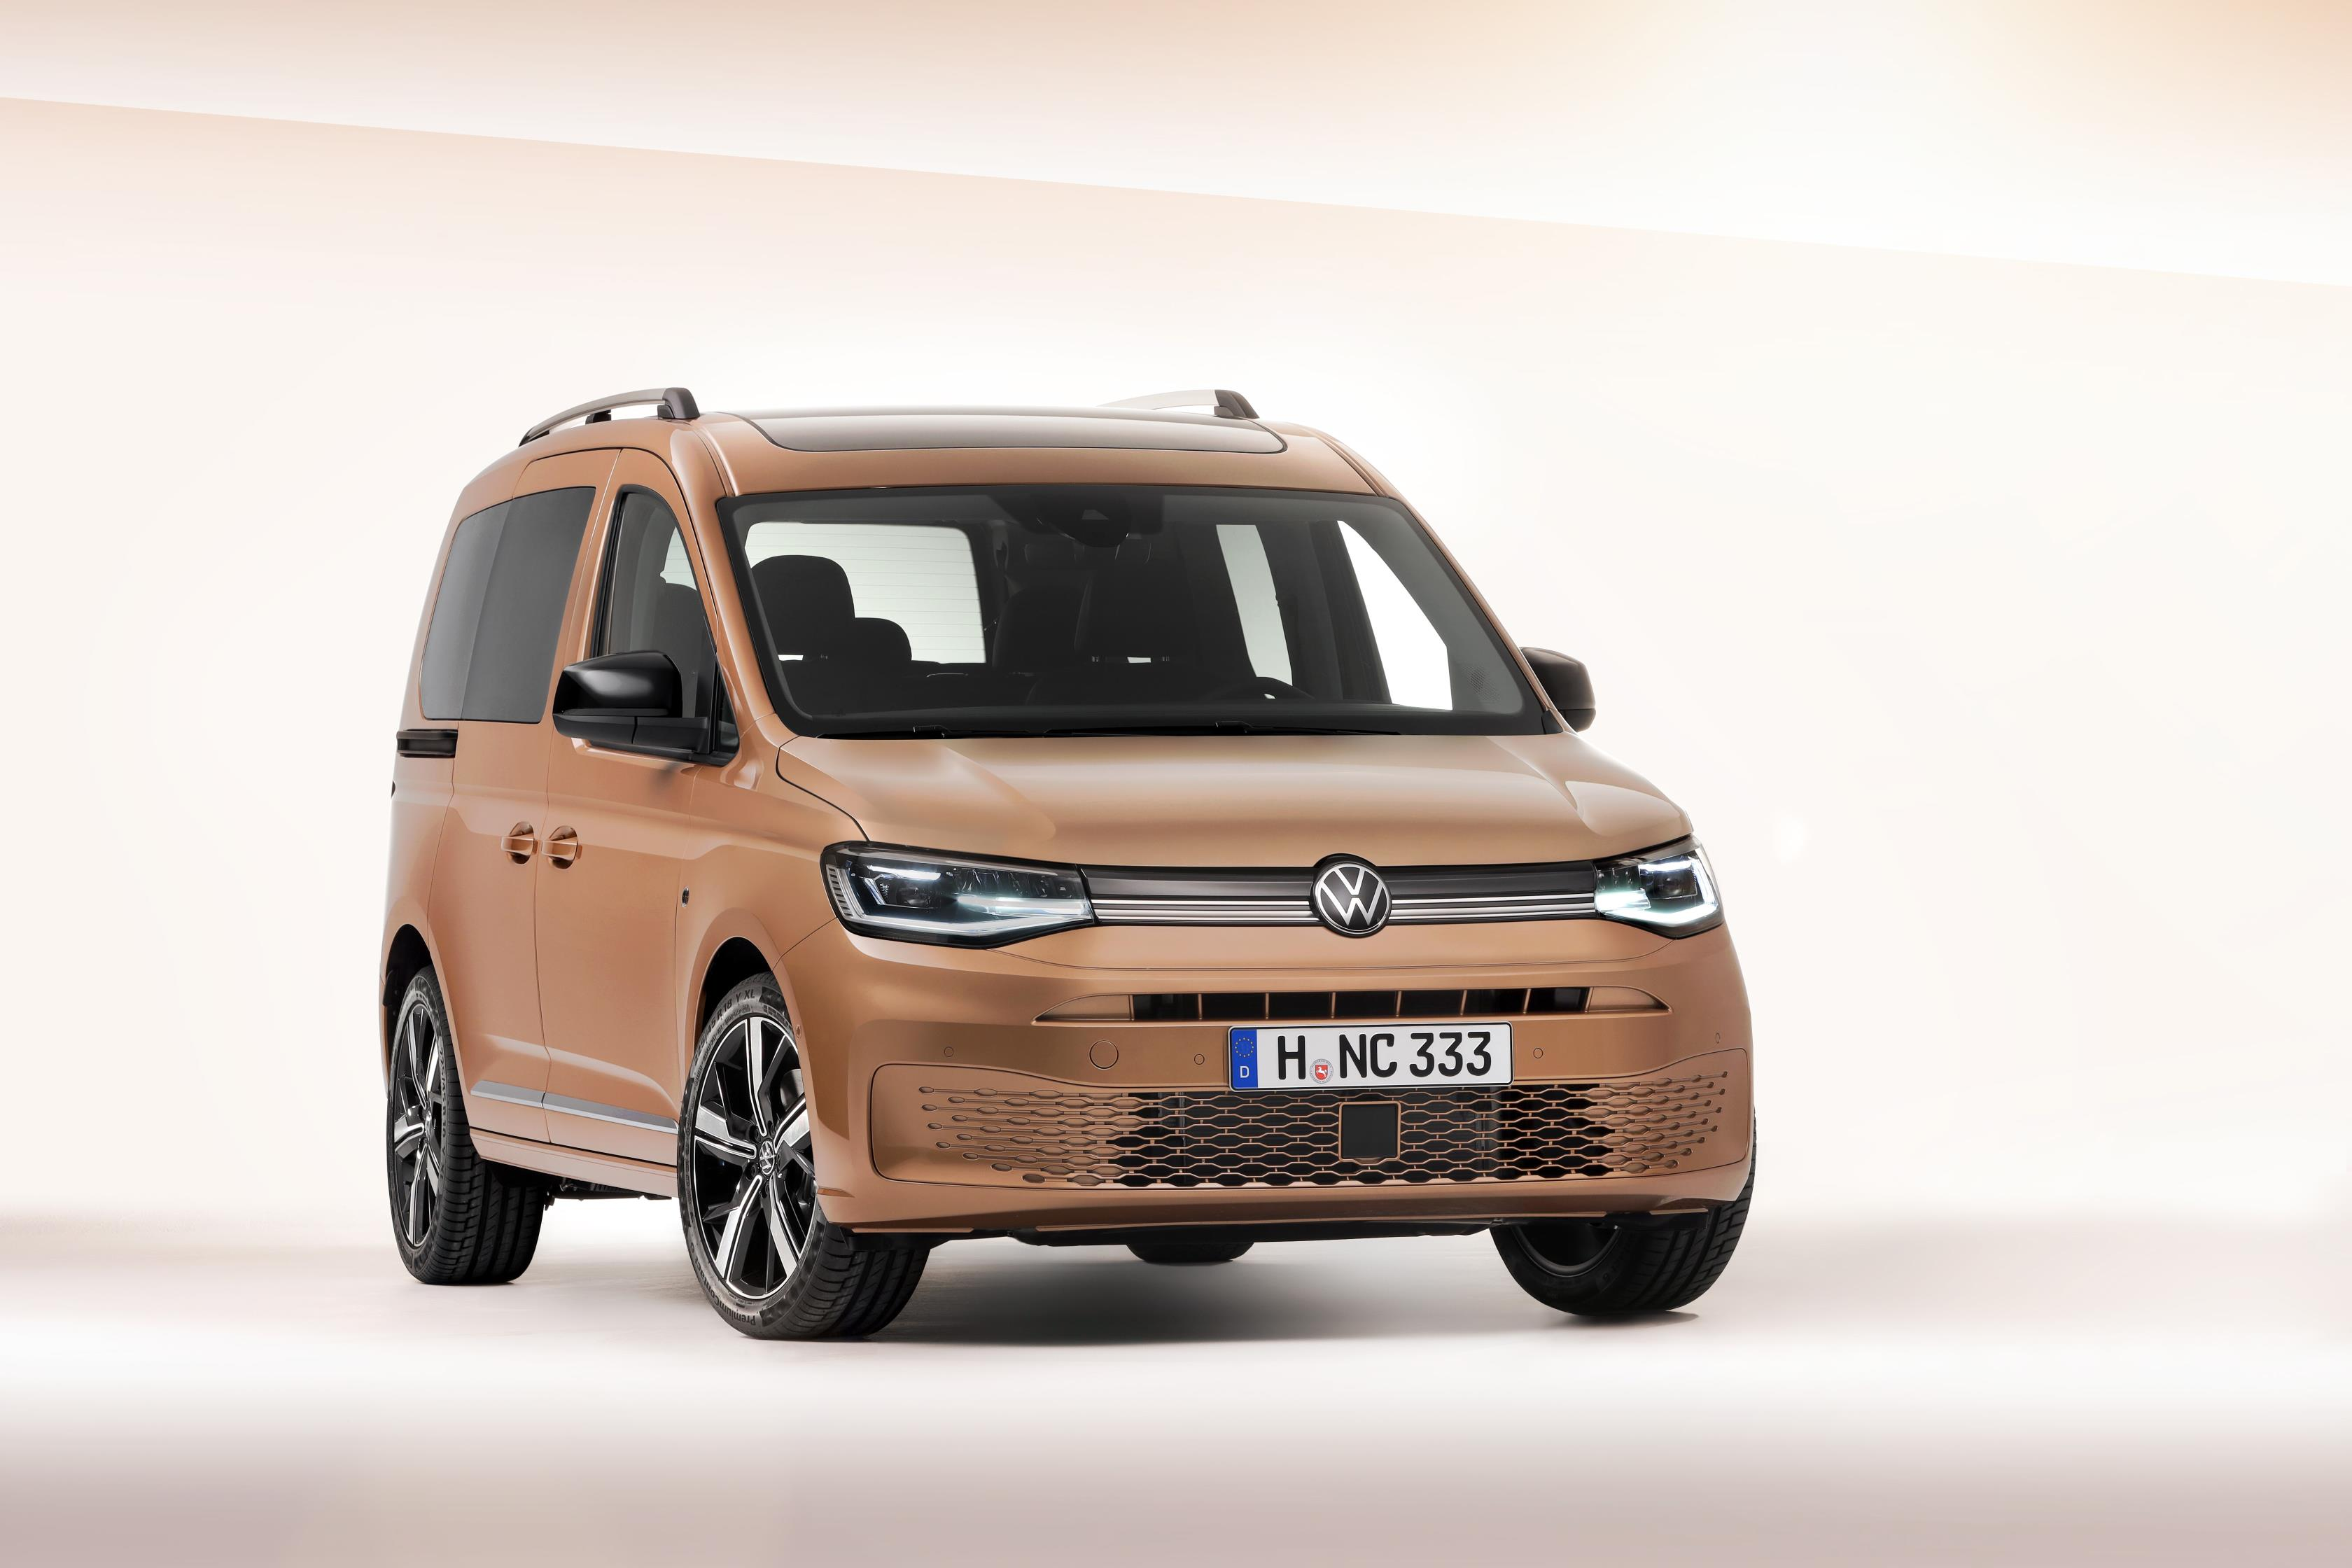 Volkswagen's new Caddy gets its global premiere